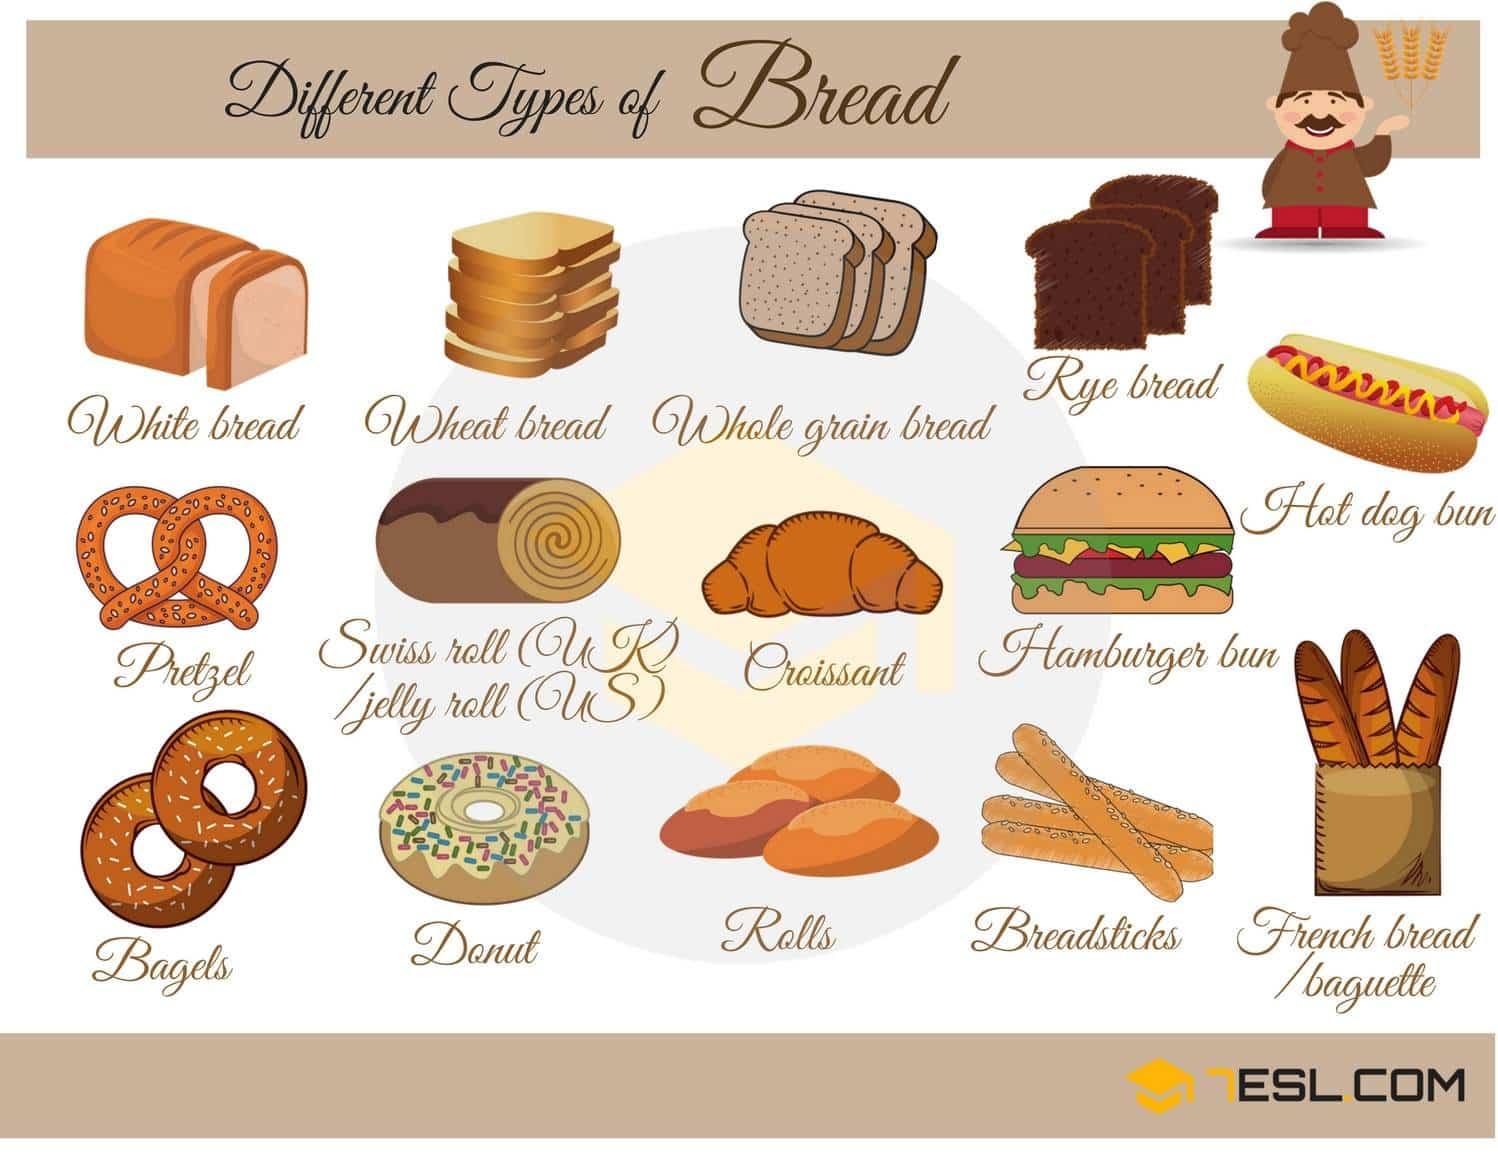 Different Types of Bread | Useful Bread Names with ...